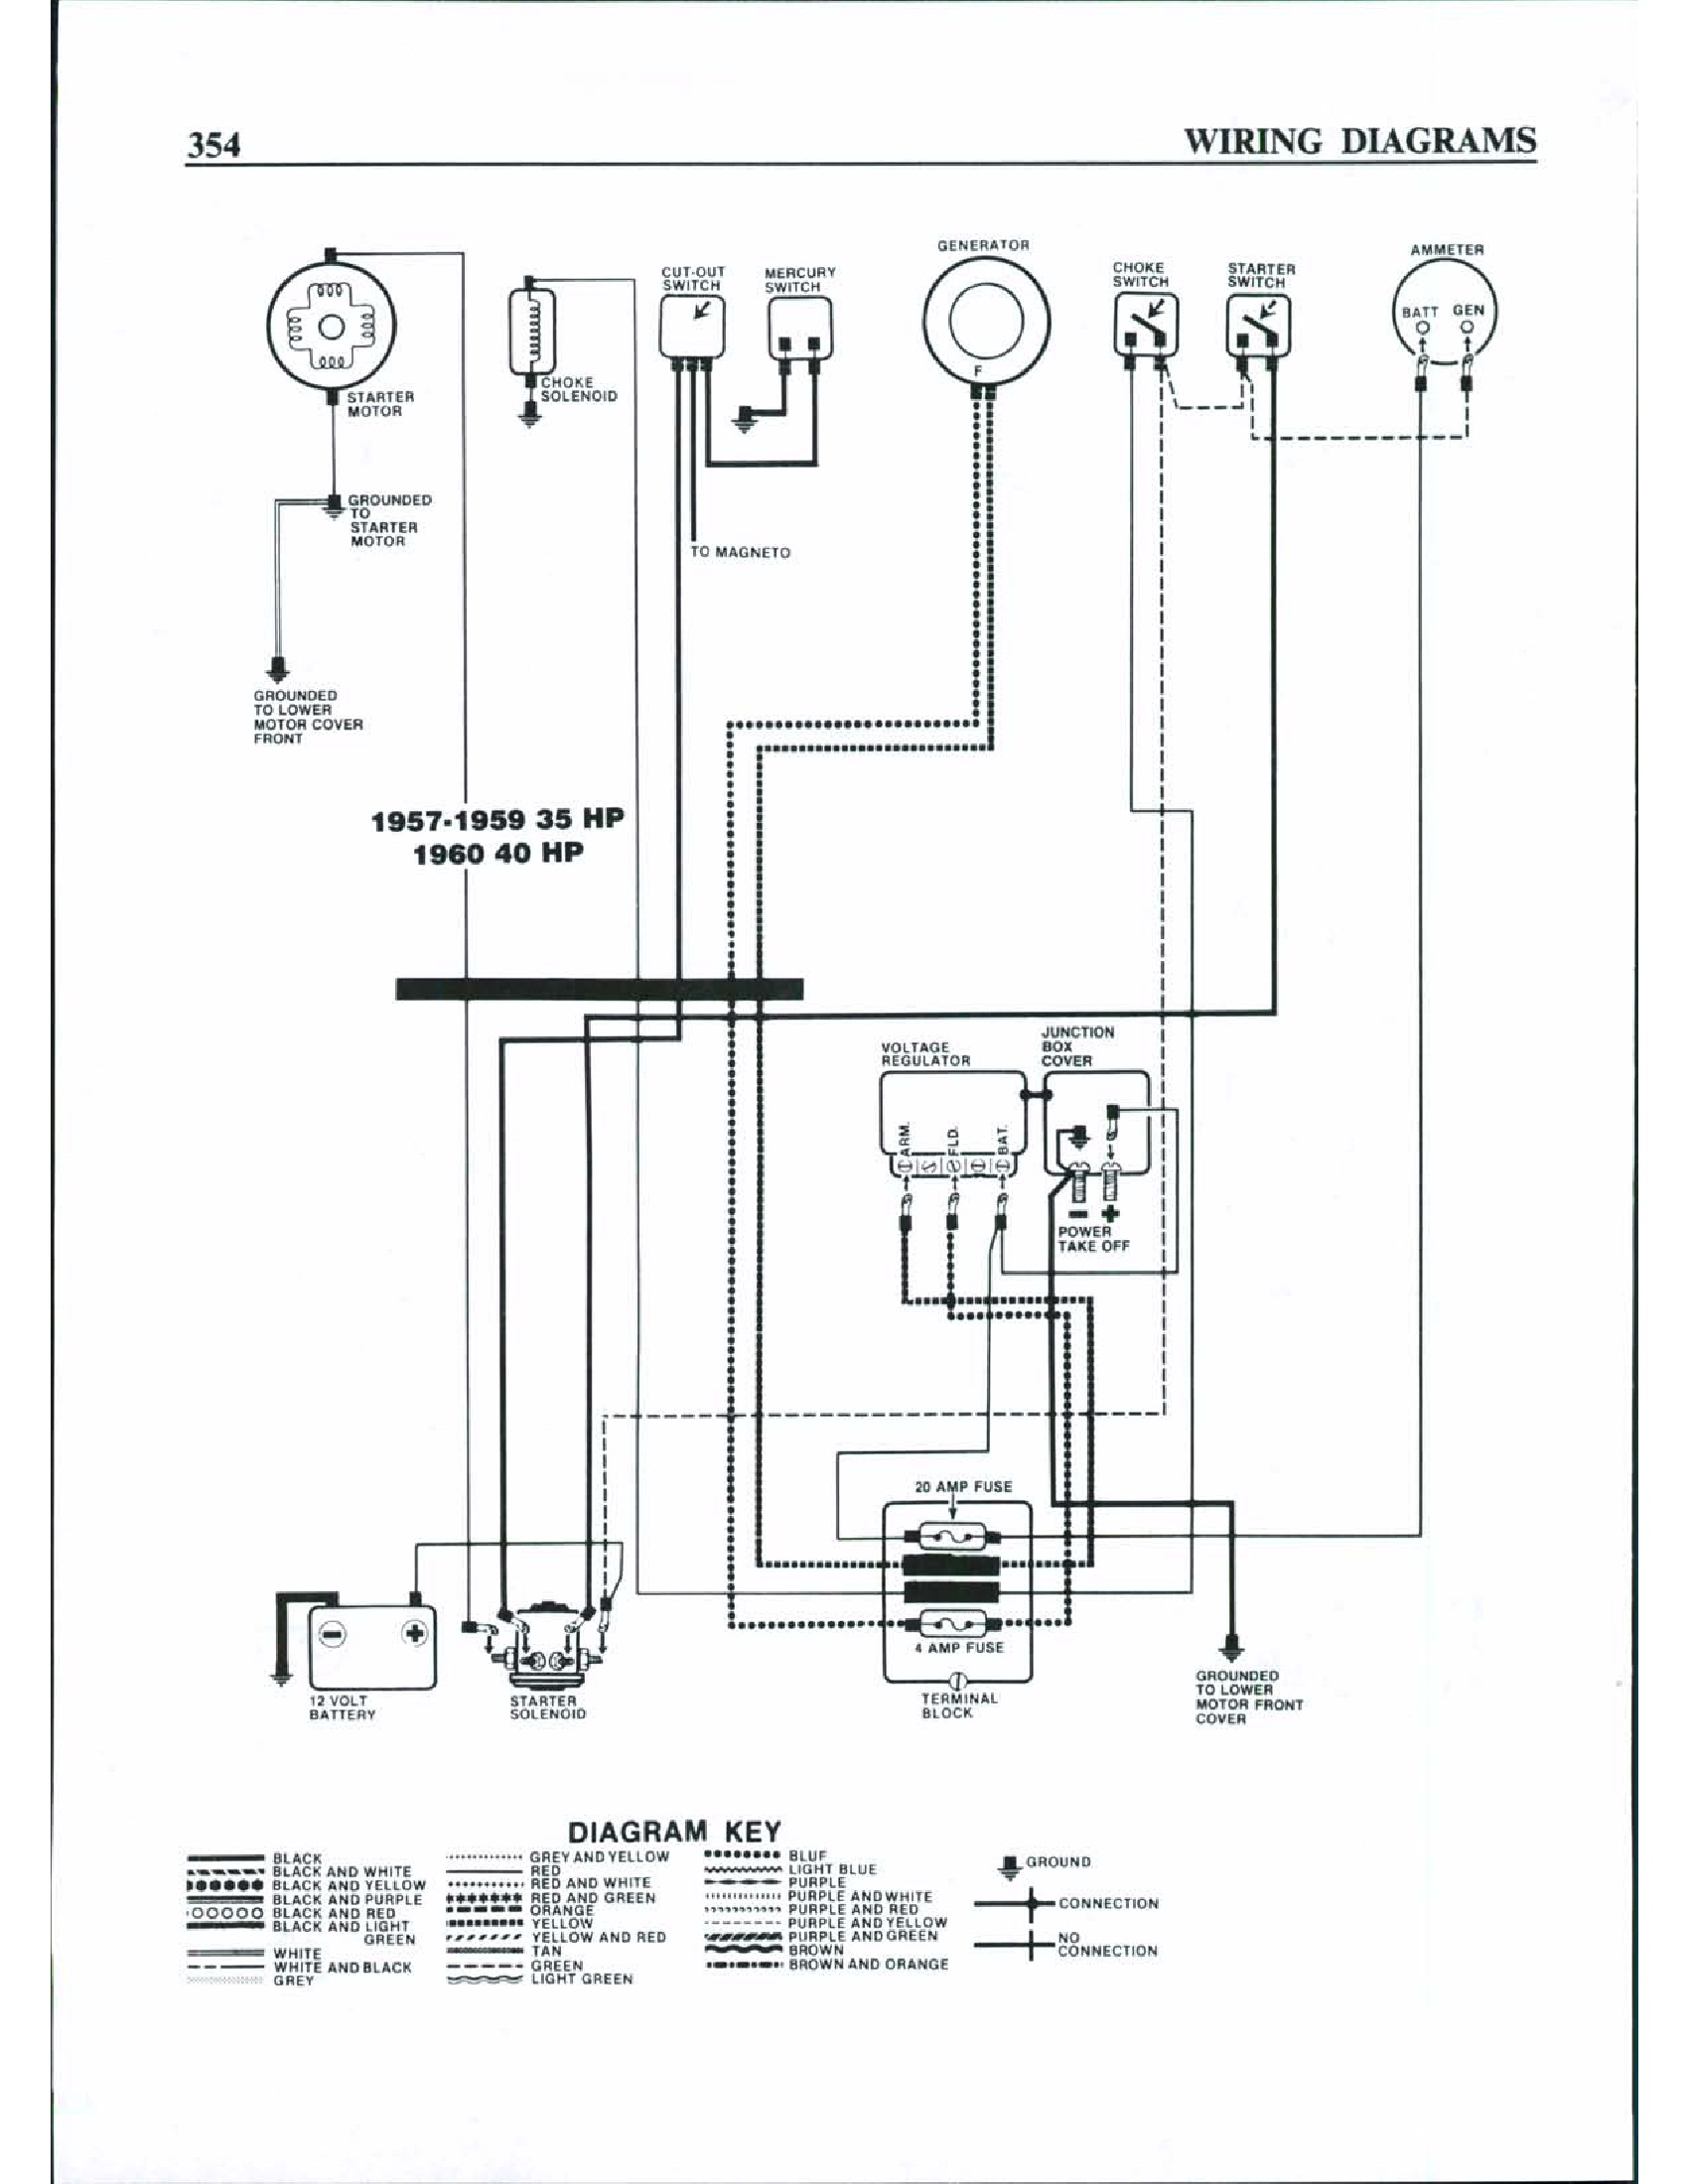 I Need A Complete Wiring Diagram For A 35 Hp 1959 I Can